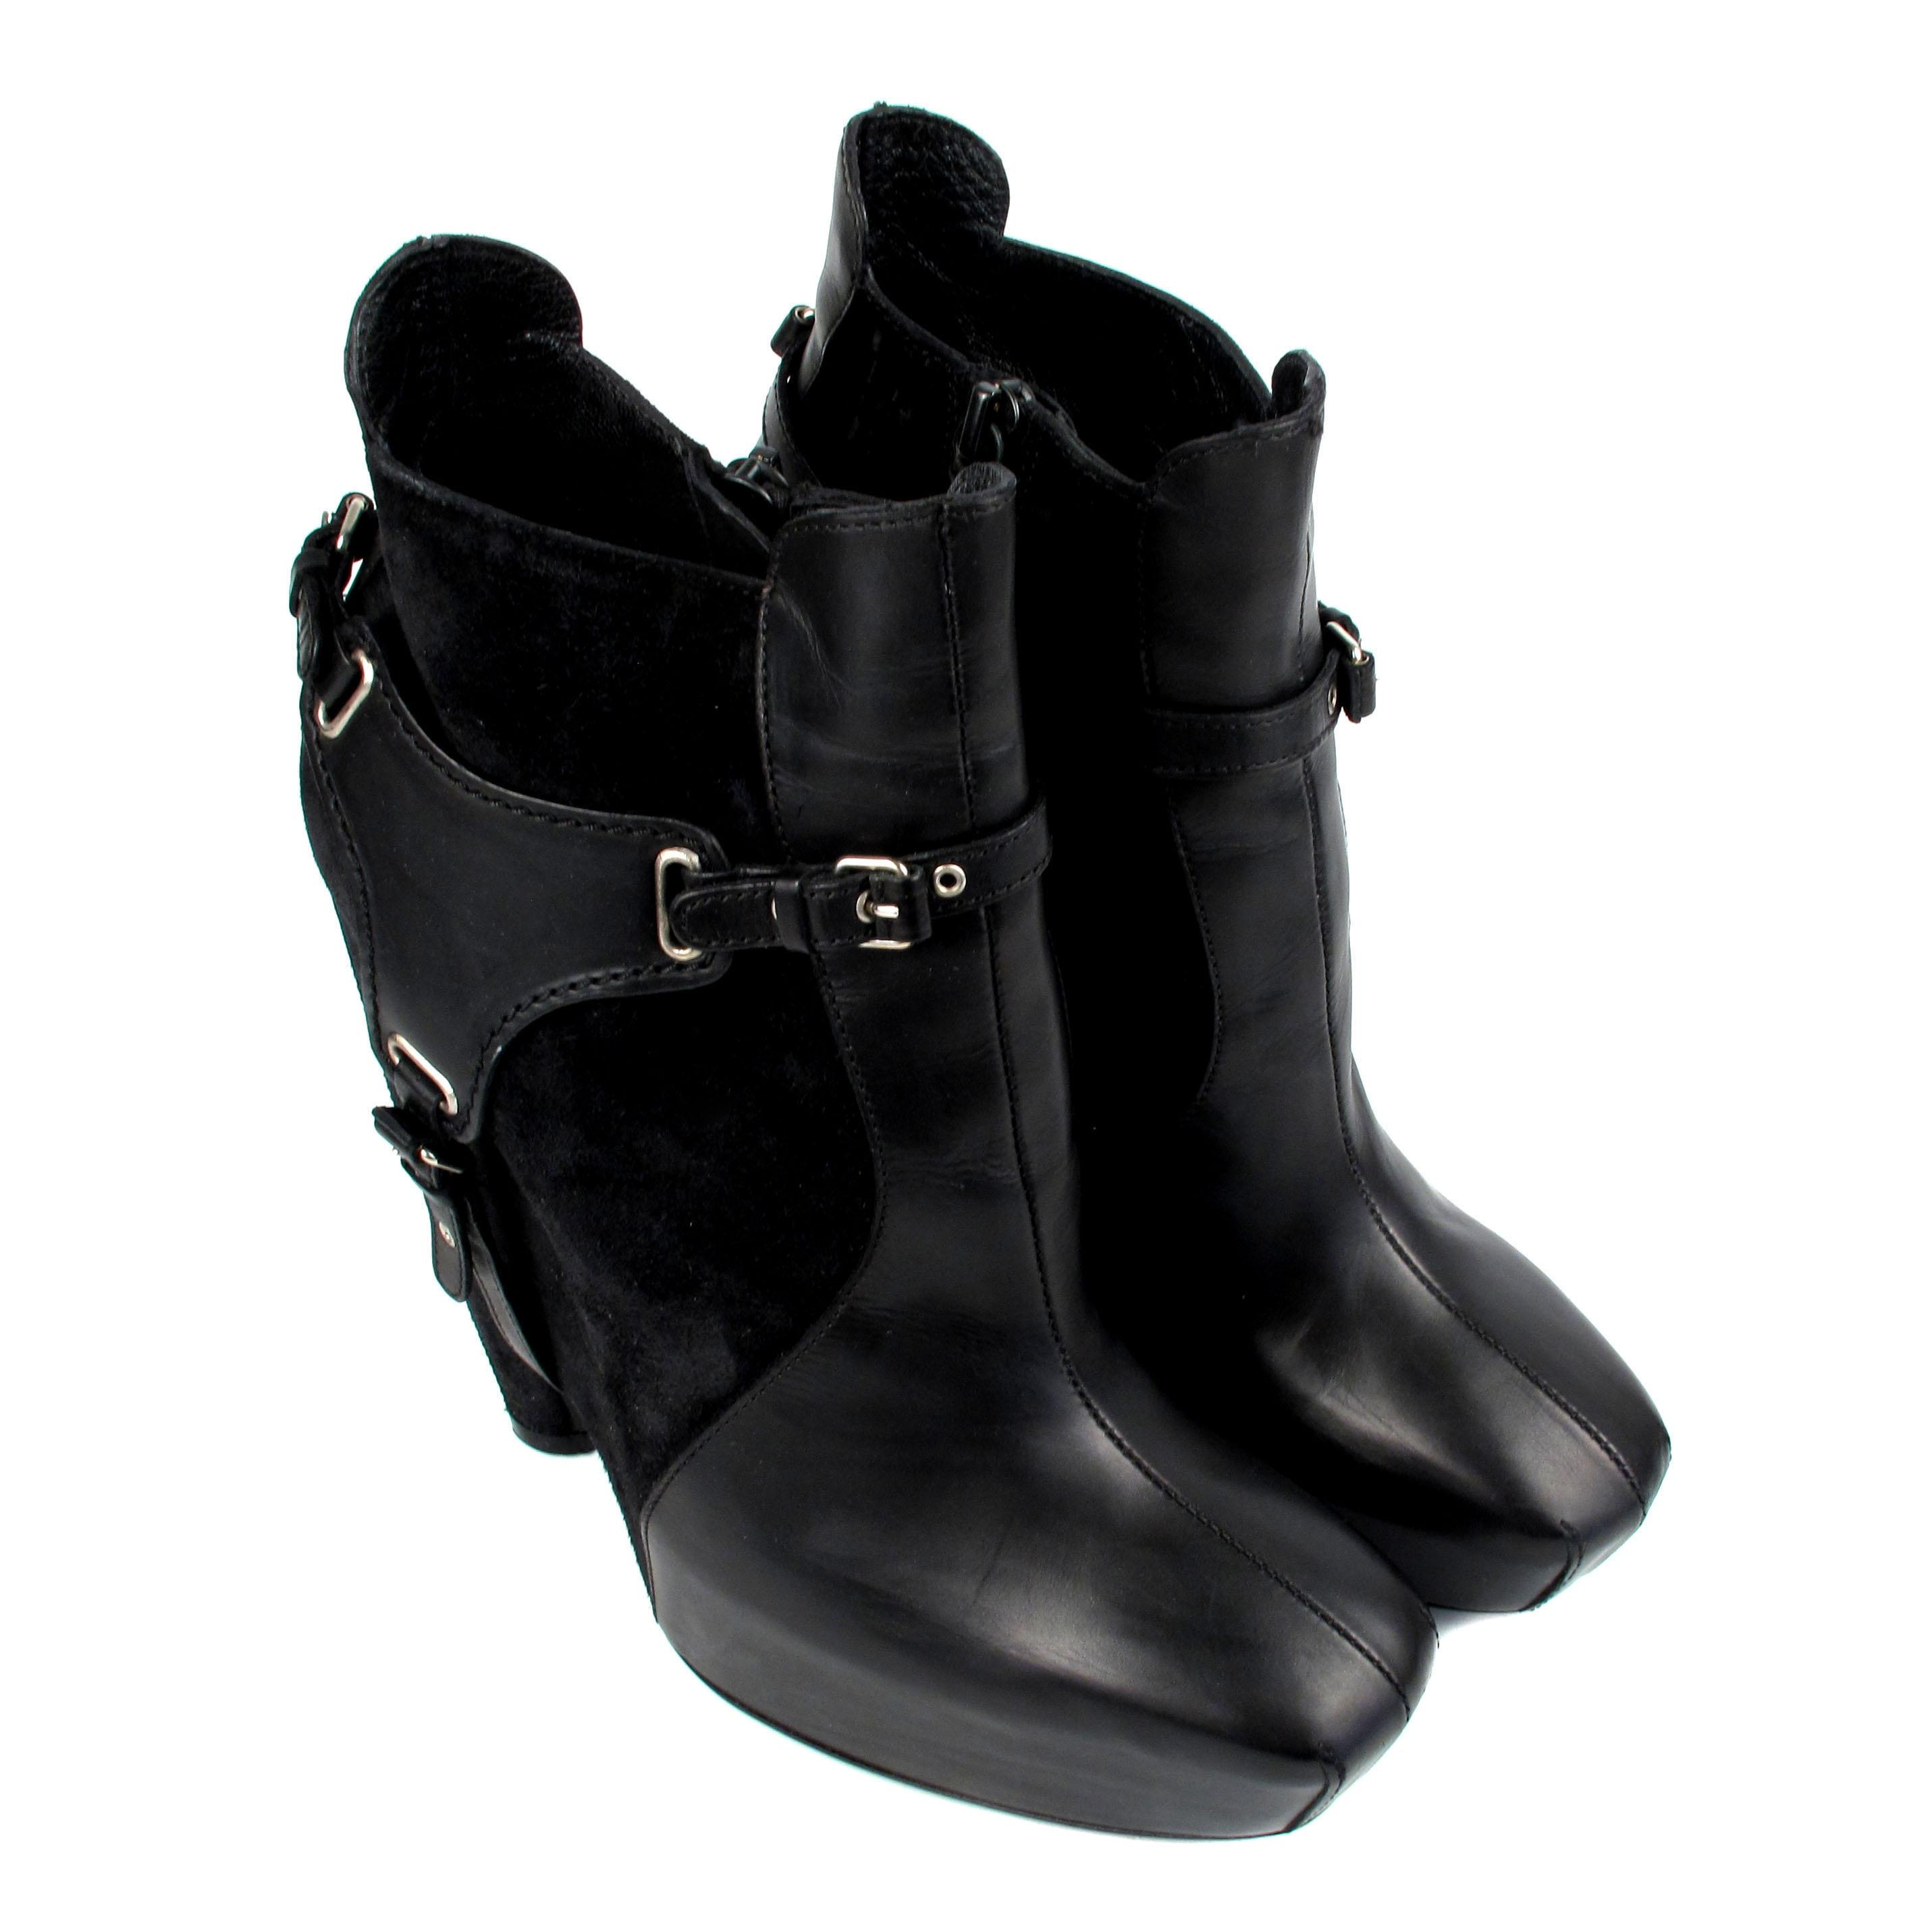 Black Boots With Silver Heel